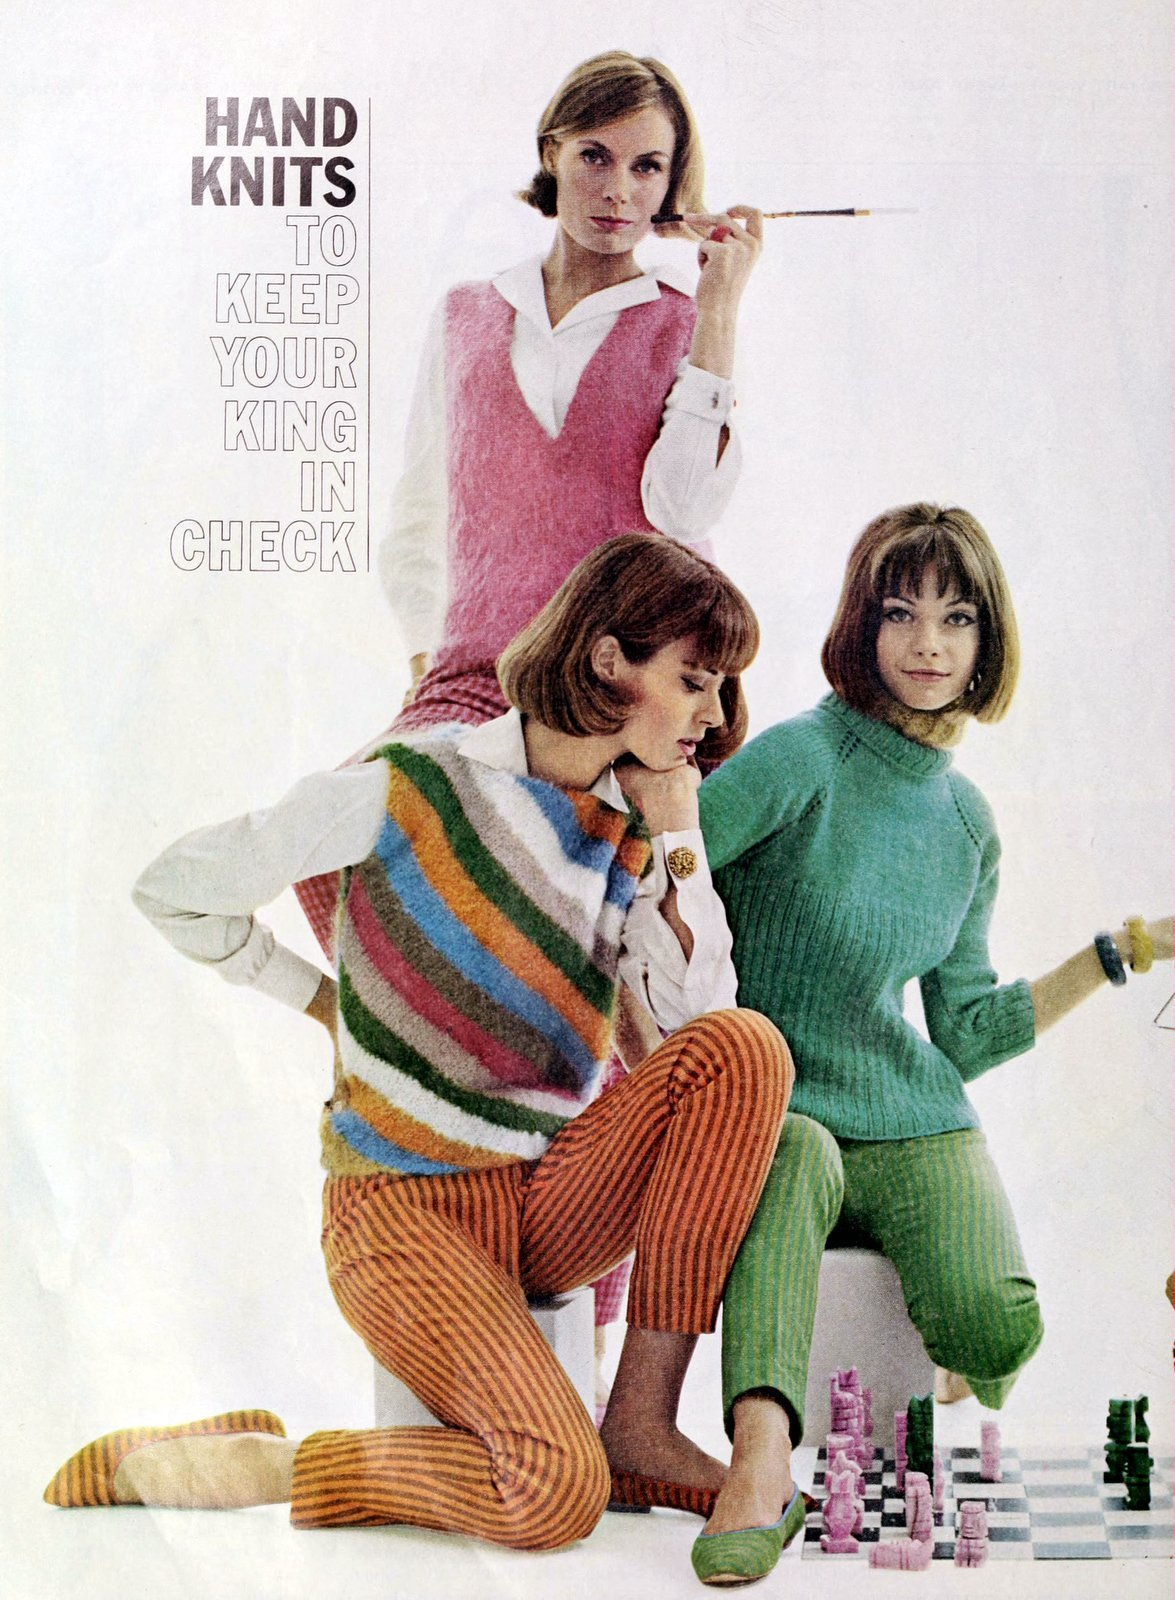 Hand-knit vintage sweater fashions (1963)